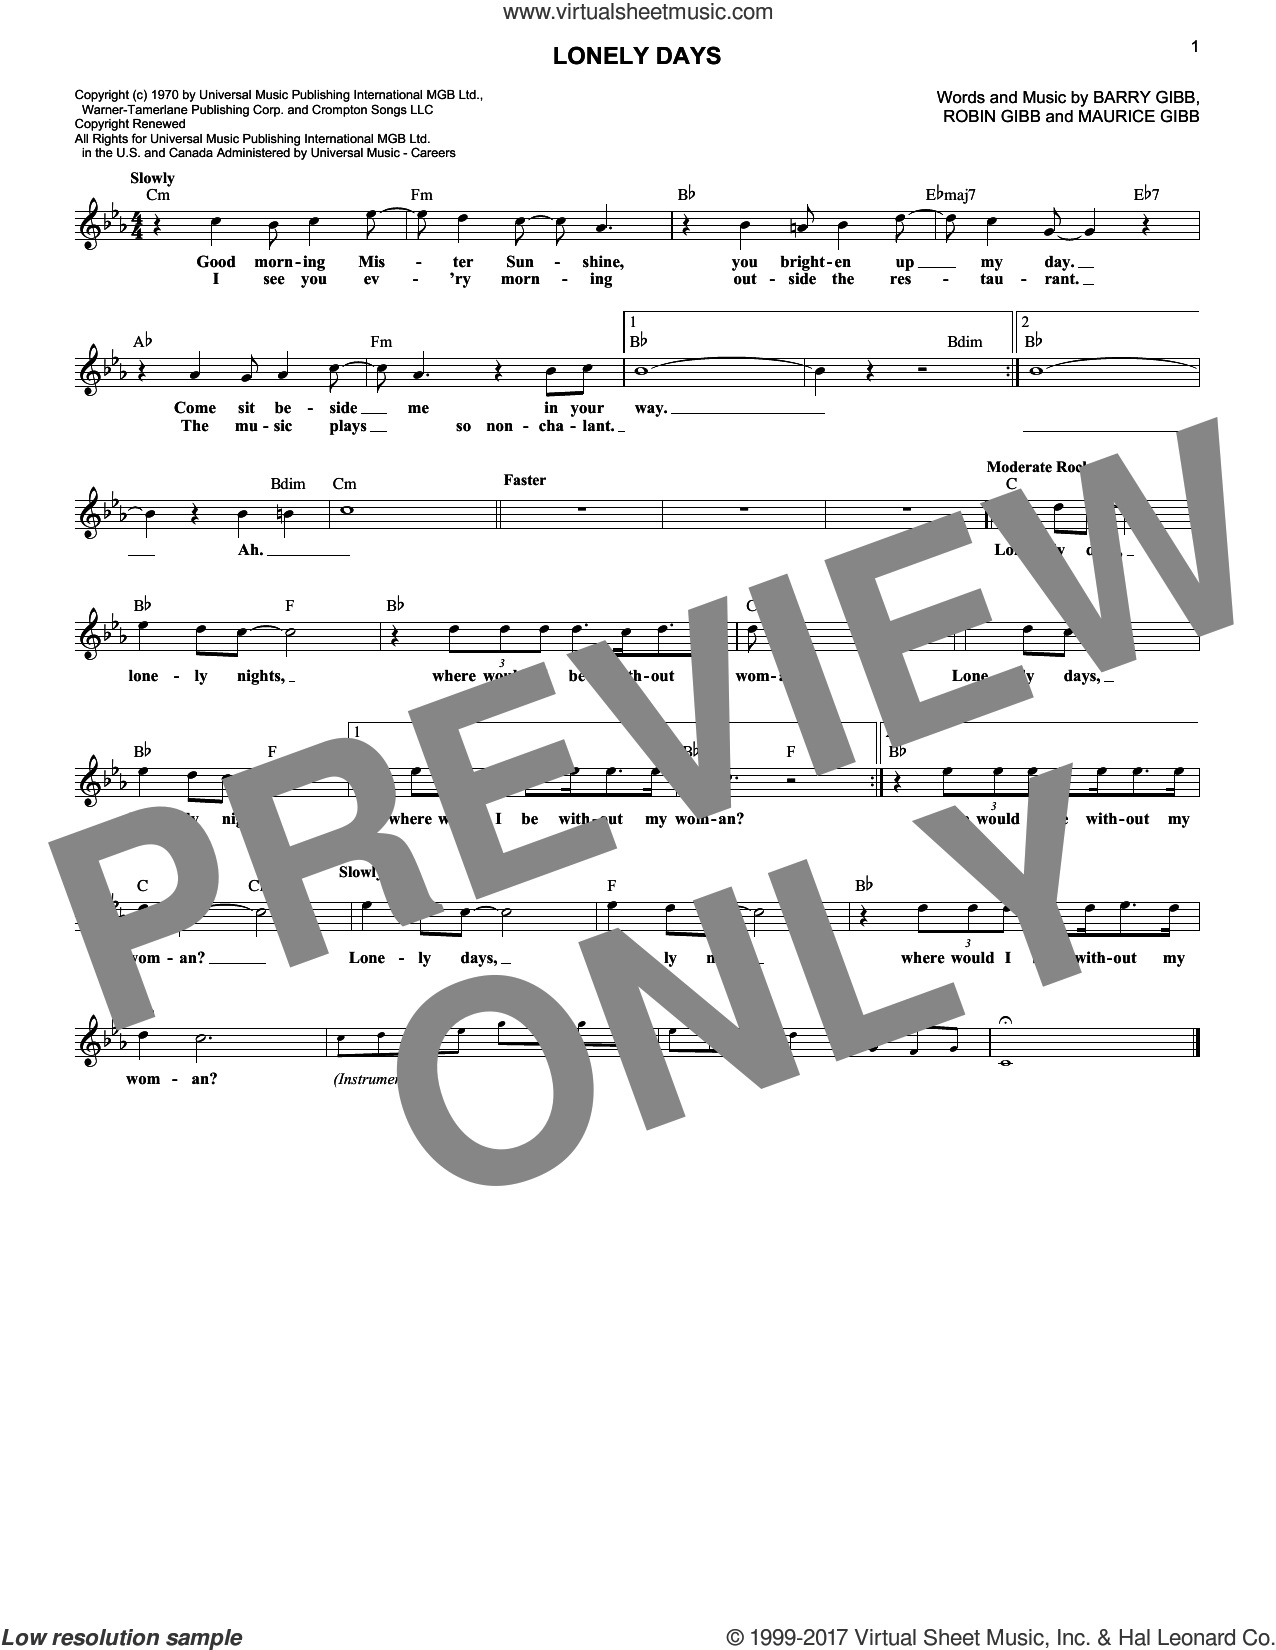 Lonely Days sheet music for voice and other instruments (fake book) by Bee Gees, Barry Gibb, Maurice Gibb and Robin Gibb, intermediate skill level